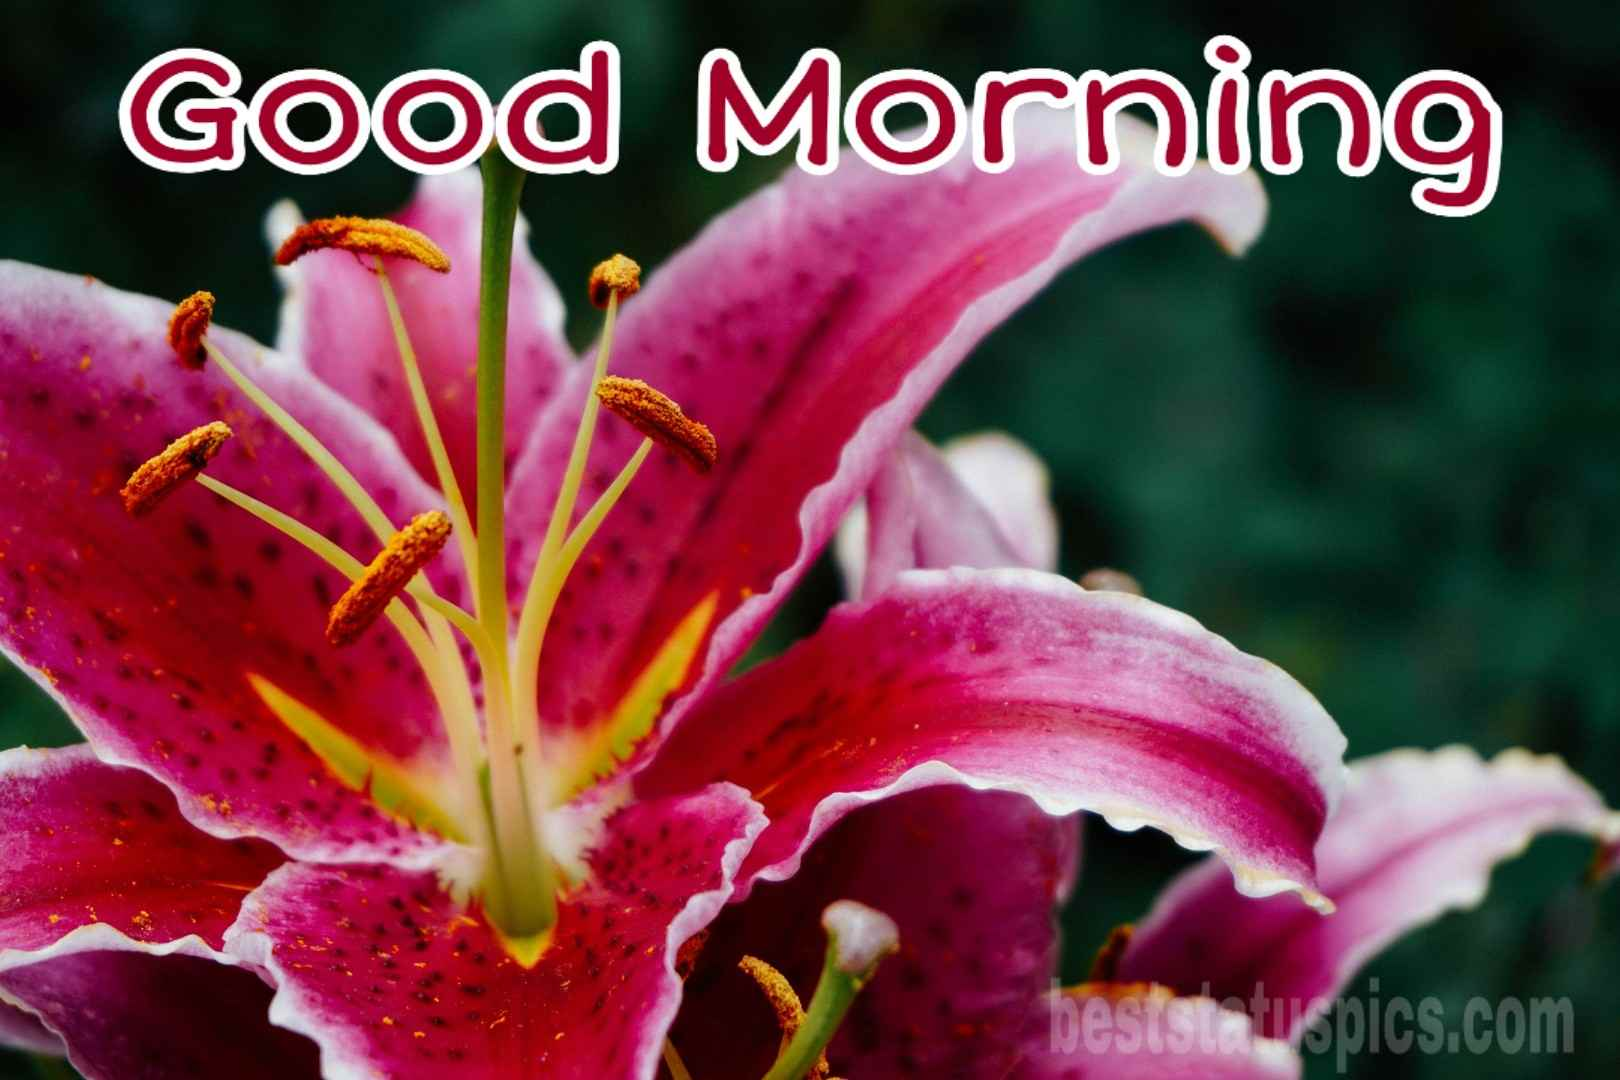 51 Good Morning Lotus Lily Flower Images Hd 2021 Best Status Pics